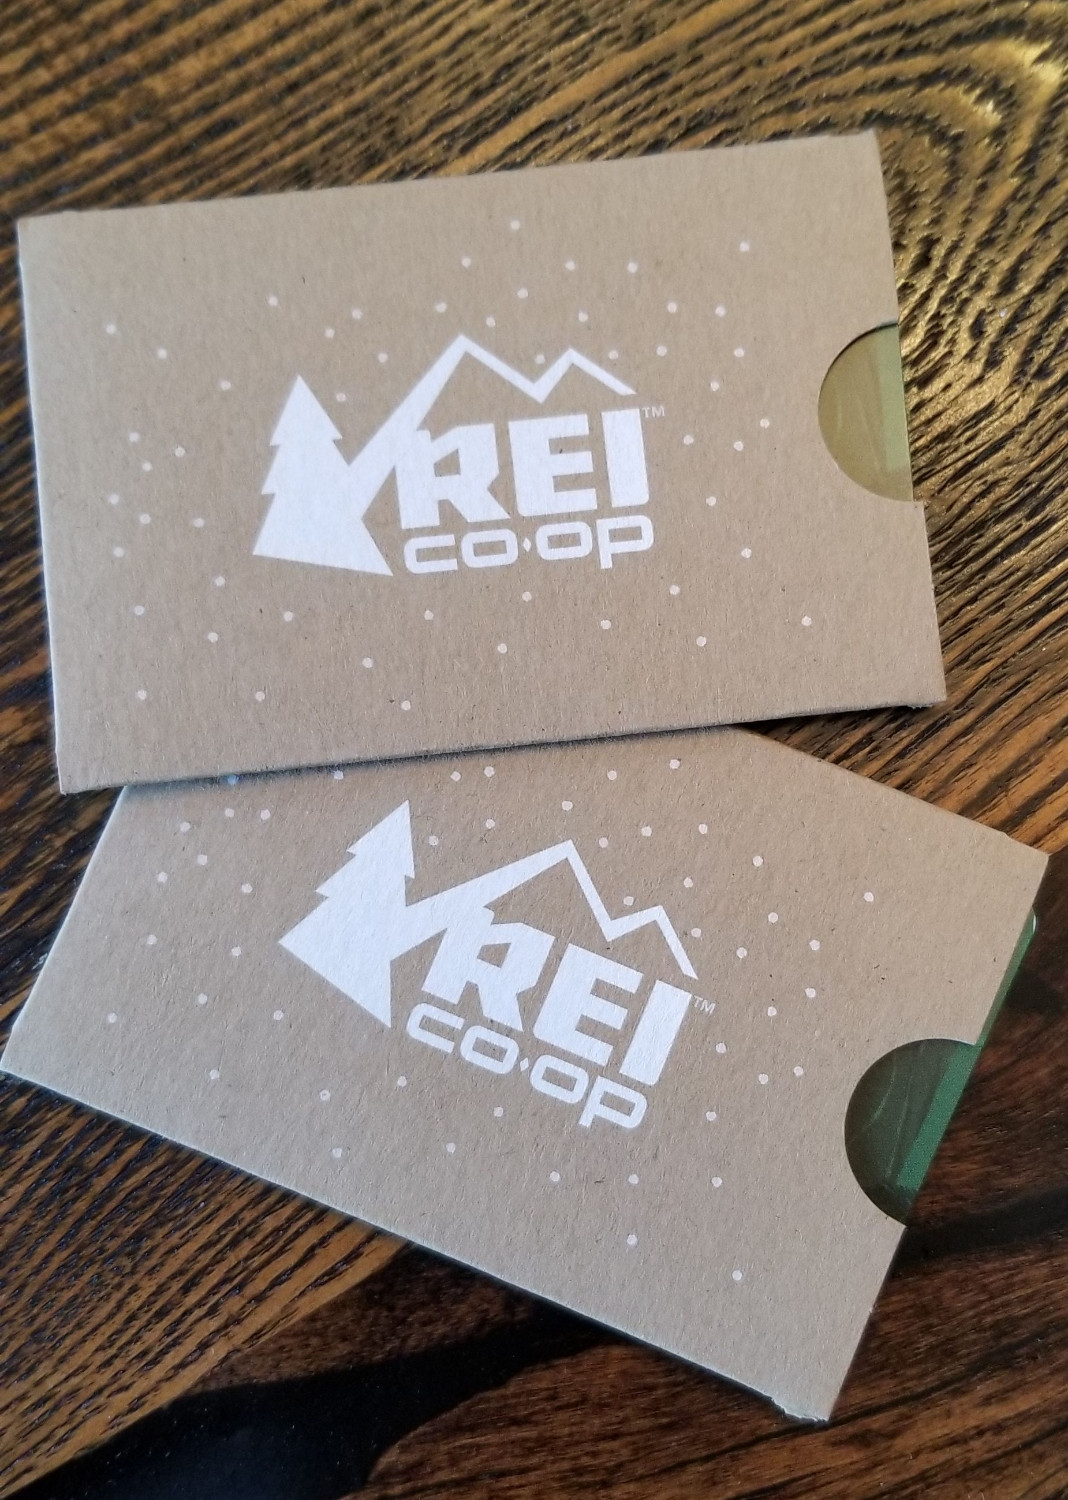 2 GRAND PRIZE WINNERS WILL RECIEVE REI GIFT CARDS